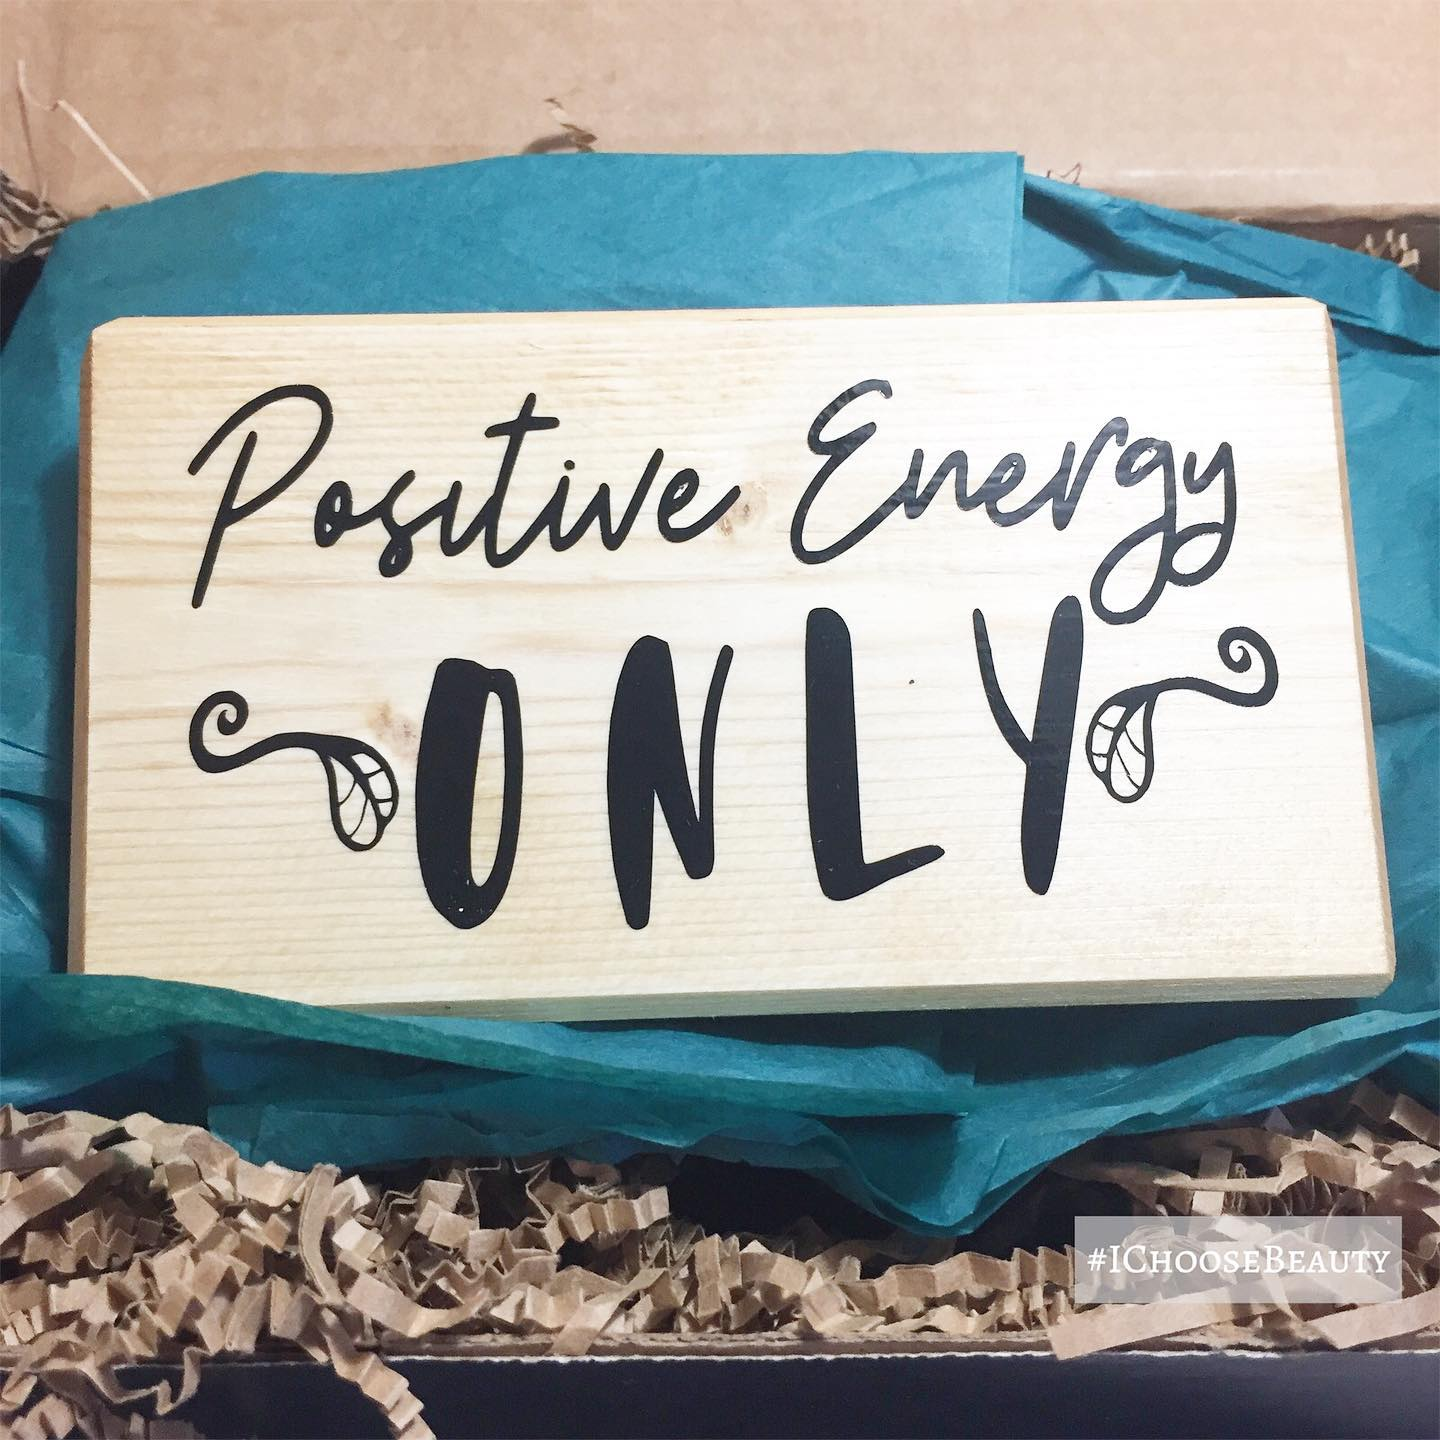 For my work space.  #ichoosebeauty Day 2554